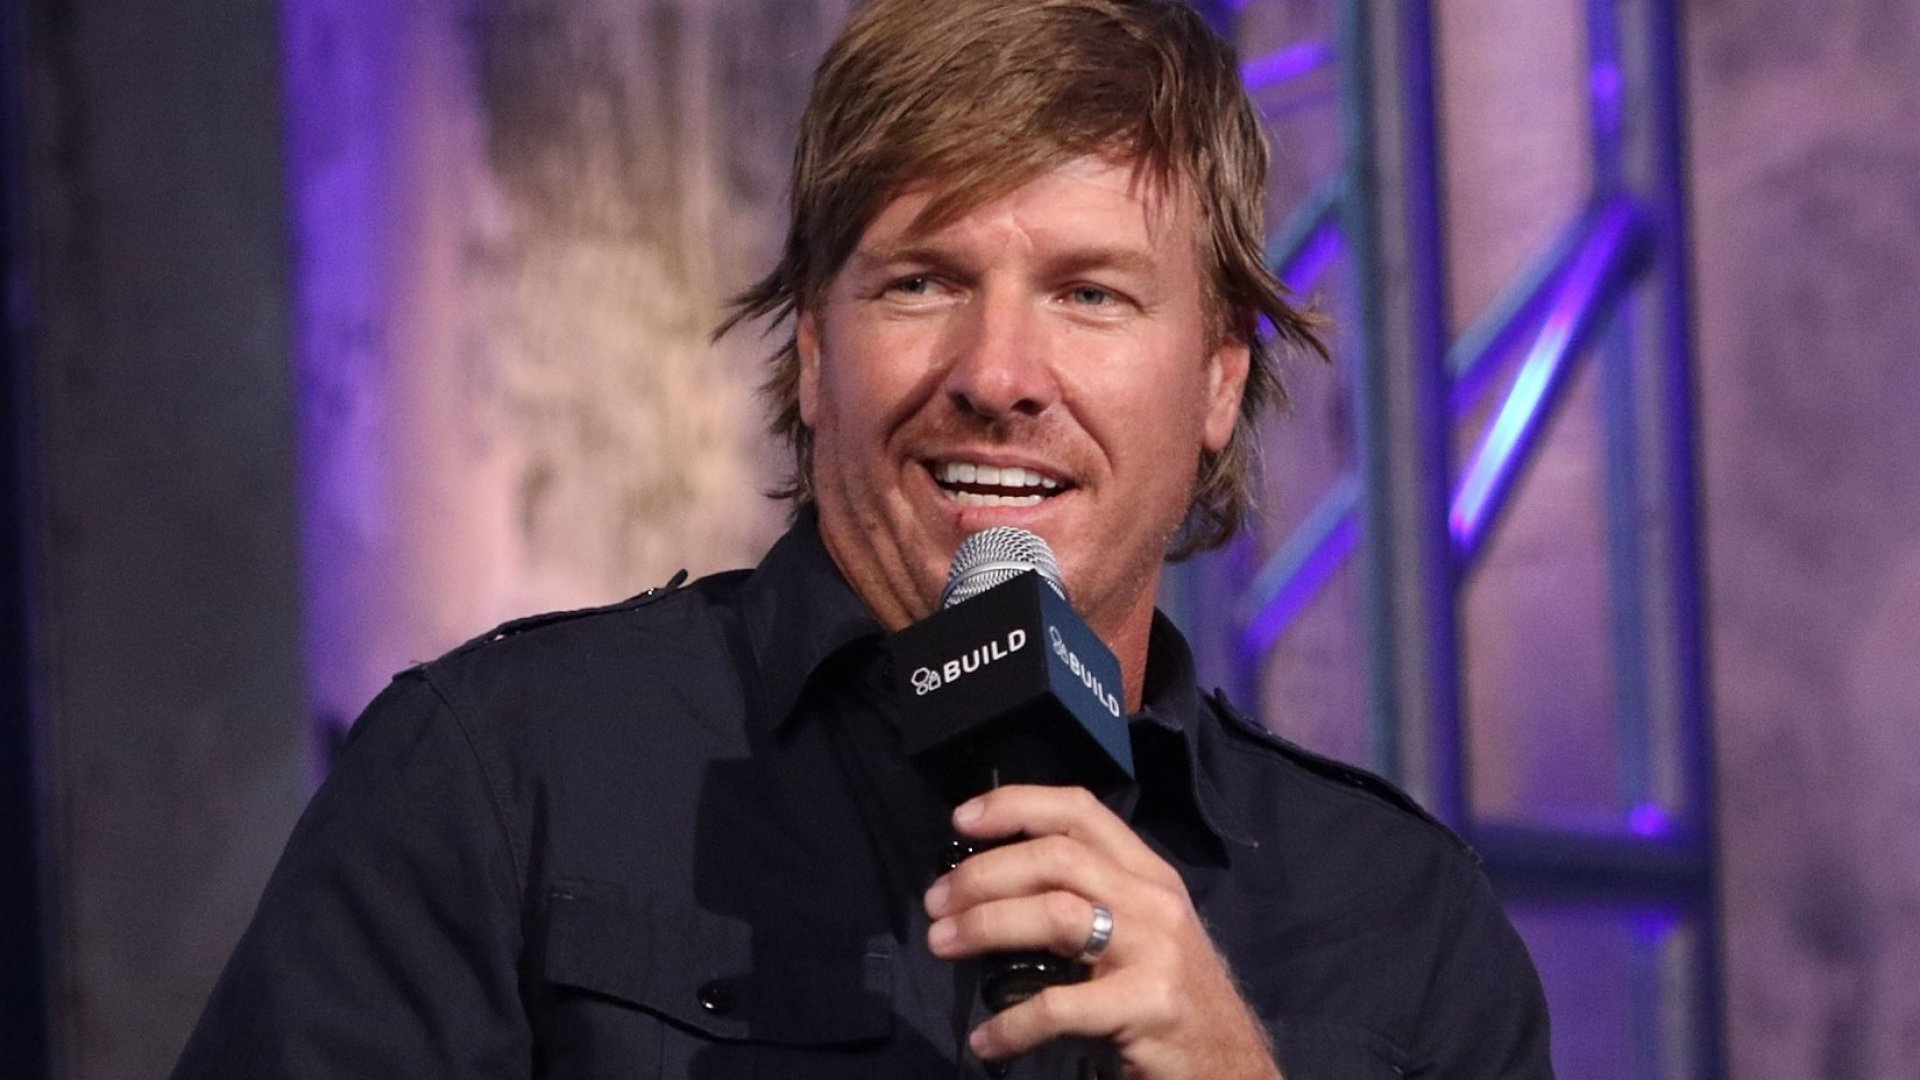 HGTV's Chip Gaines Just Nailed the Key to Trying New Things (and Persevering) In 1 Brilliant Sentence